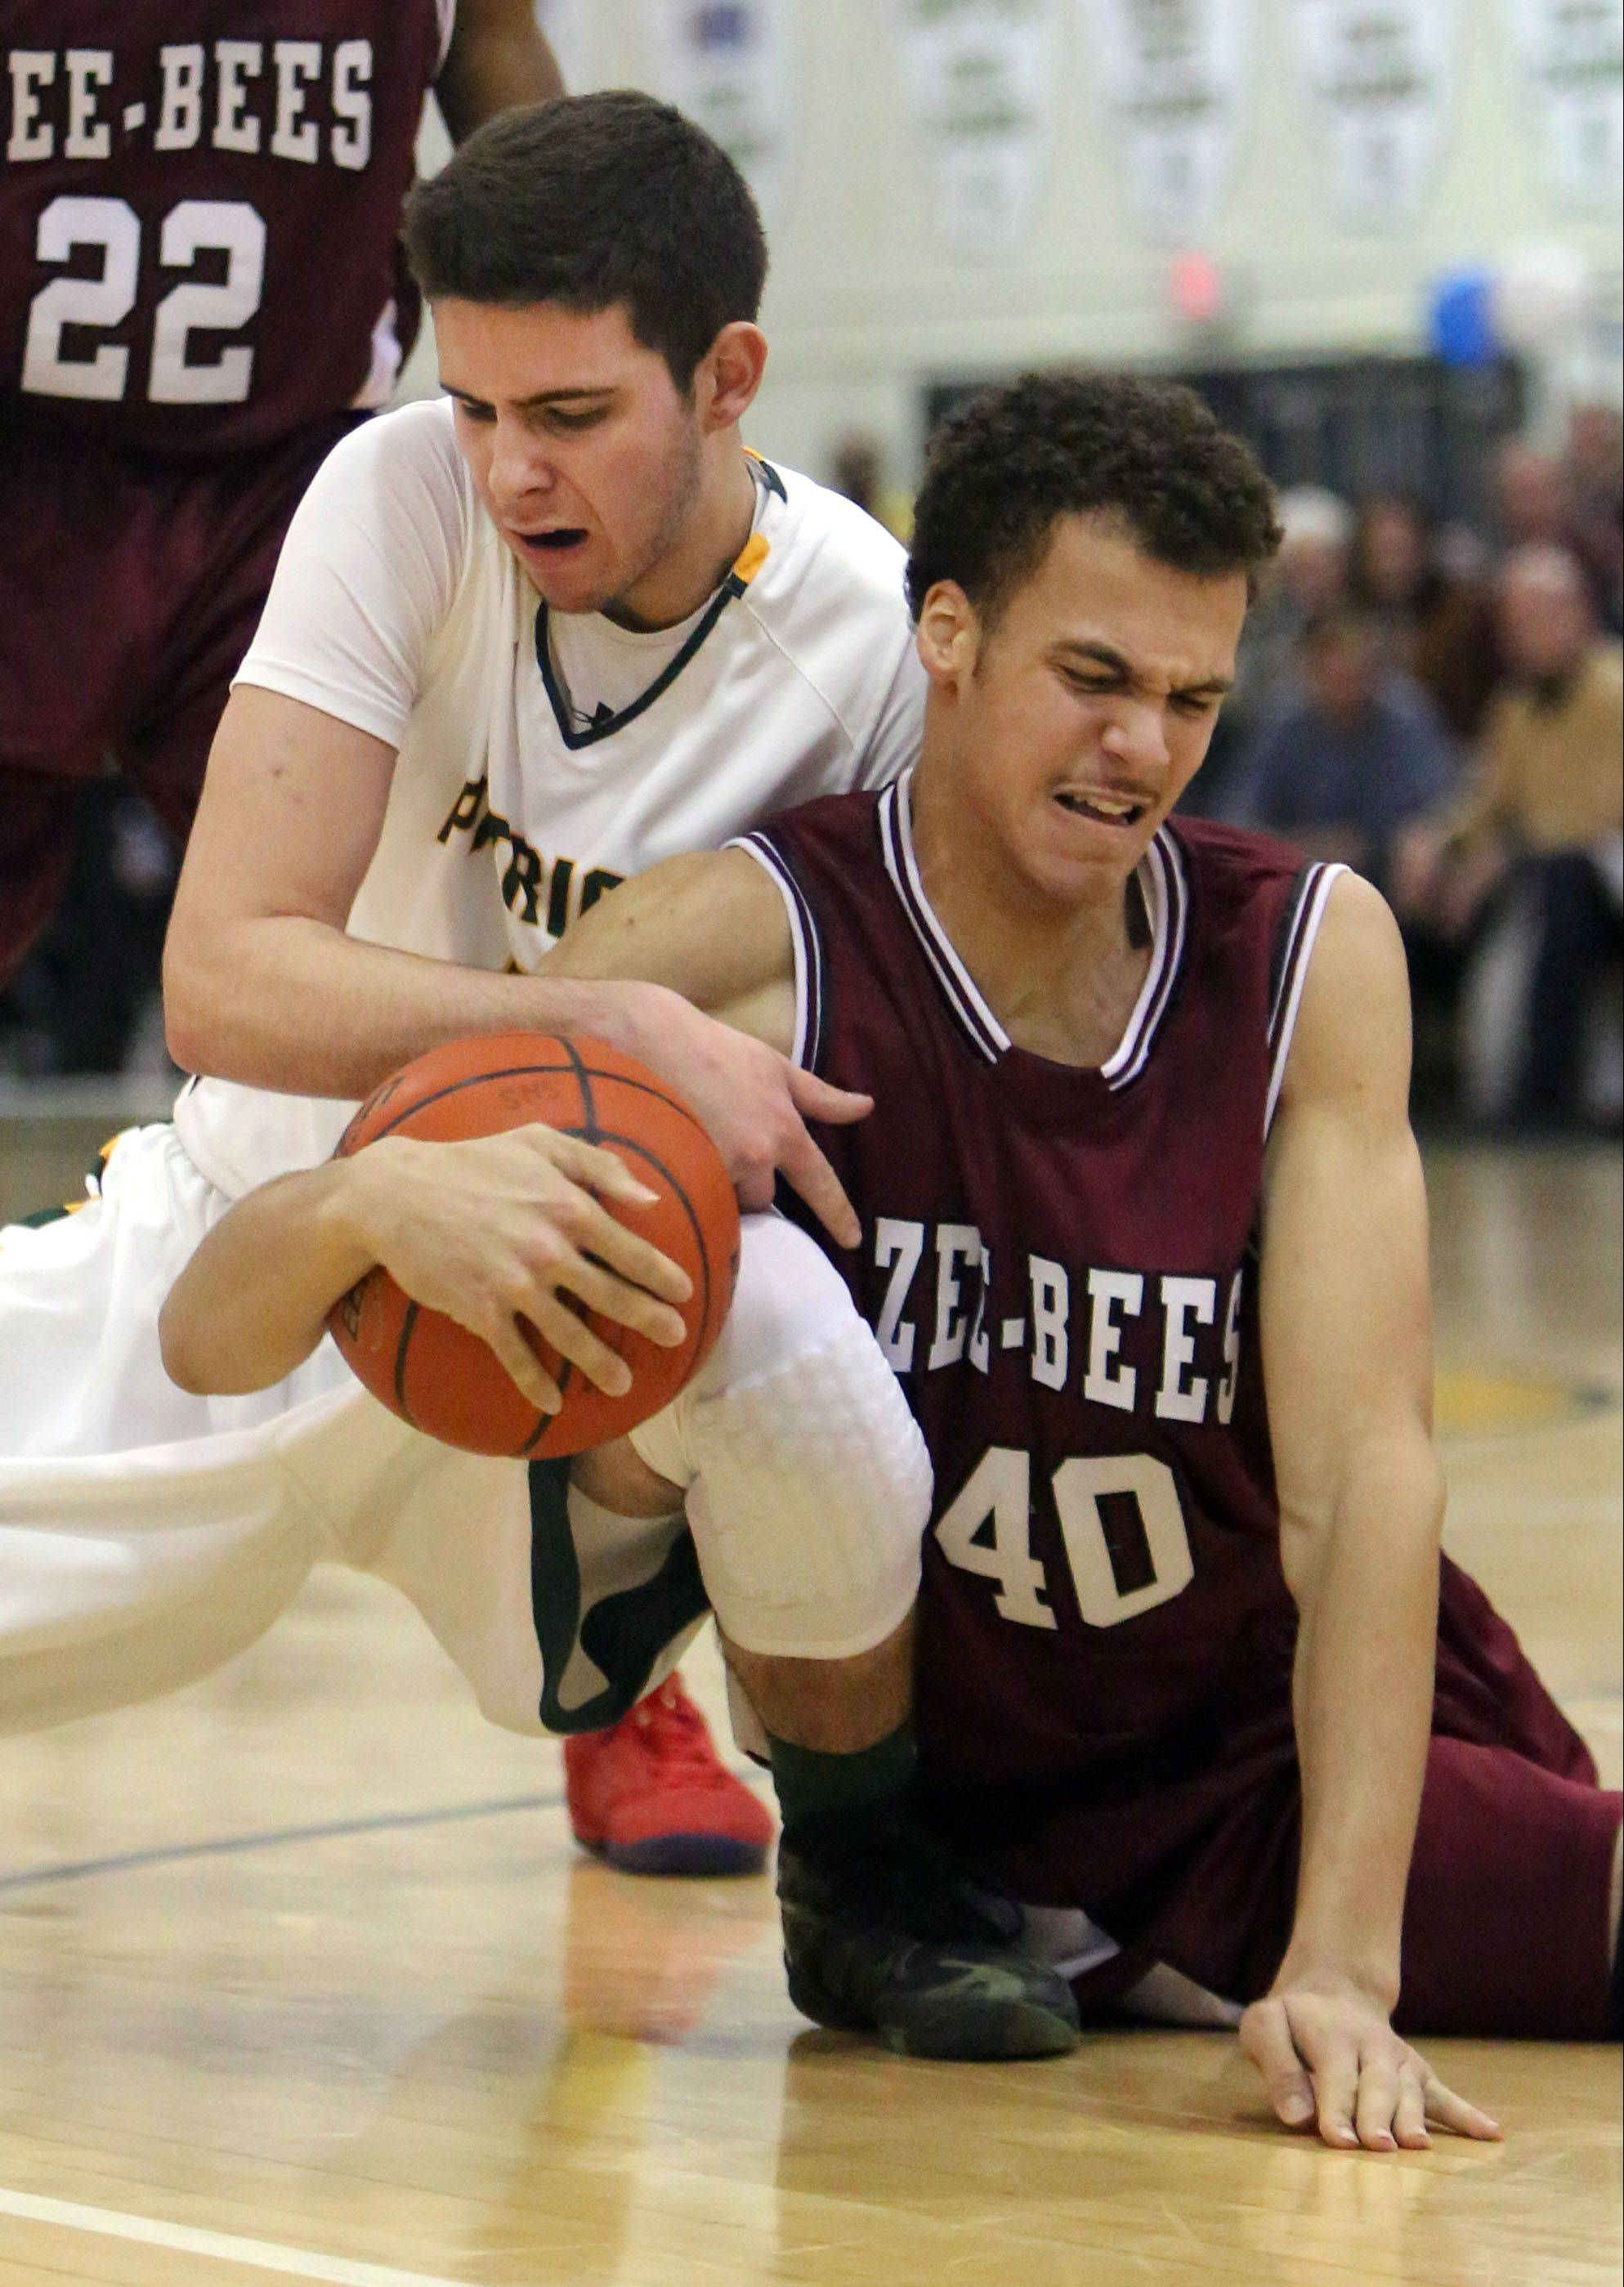 Stevenson's Sam Panitch, left, and Zion Benton's Chris Moragne fight for a loose ball during NSC Lake play Friday night at Stevenson.